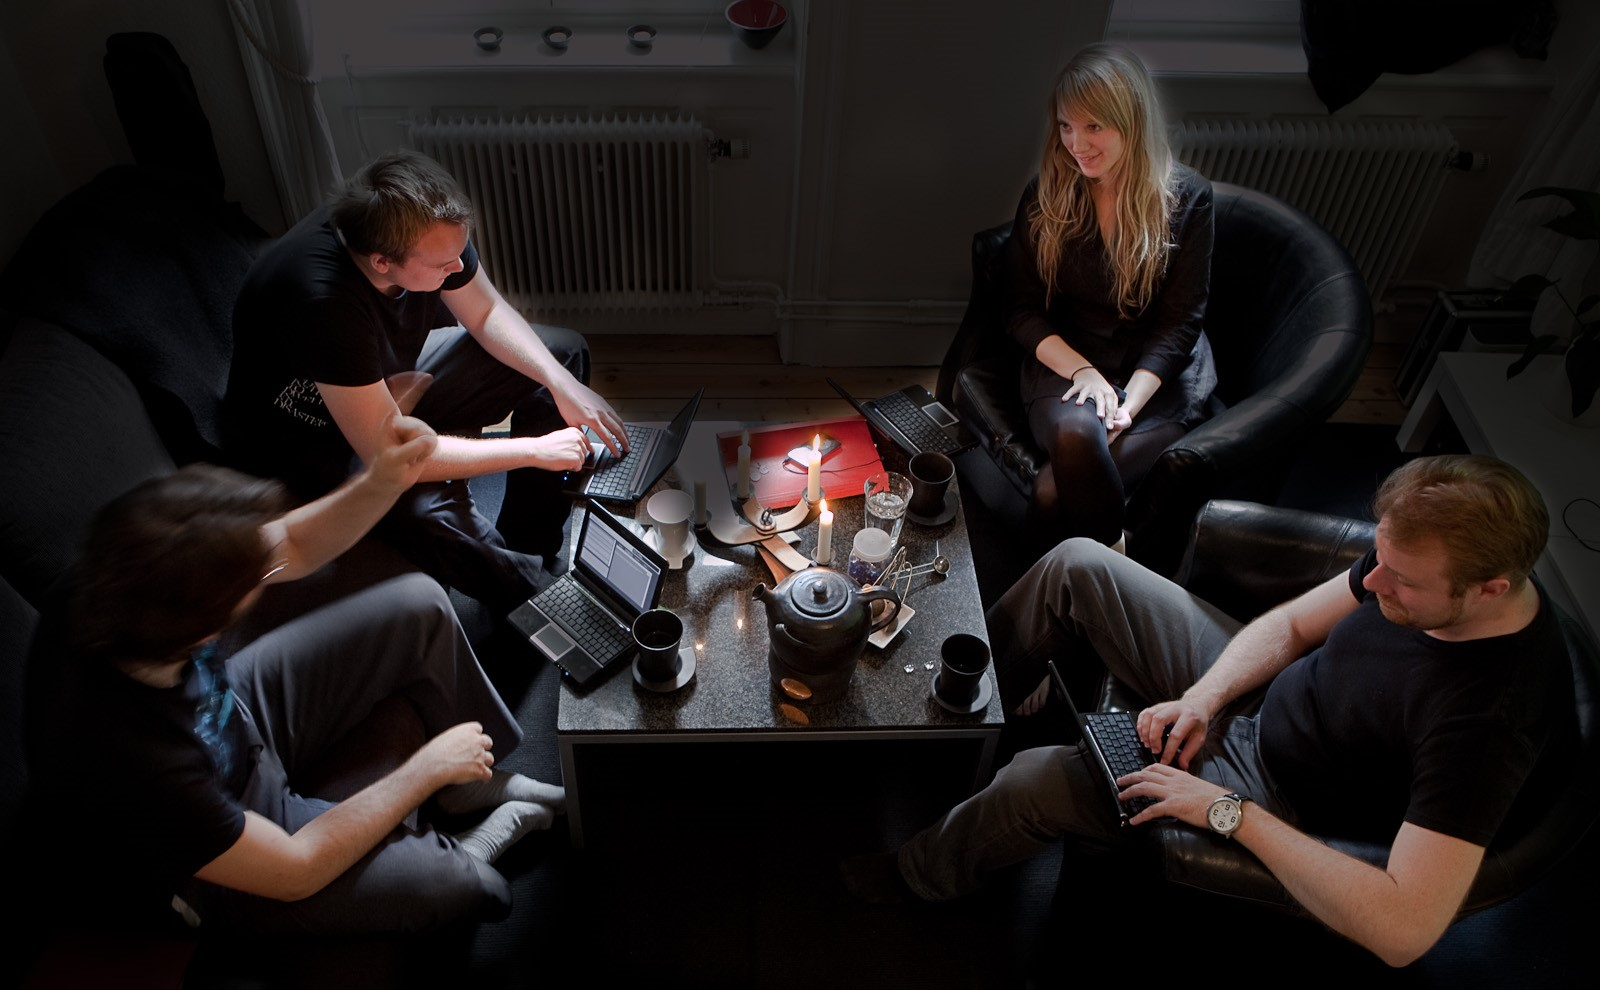 Figure 3: Players and game master engaged in tabletop role-playing using the Undercurrents system.